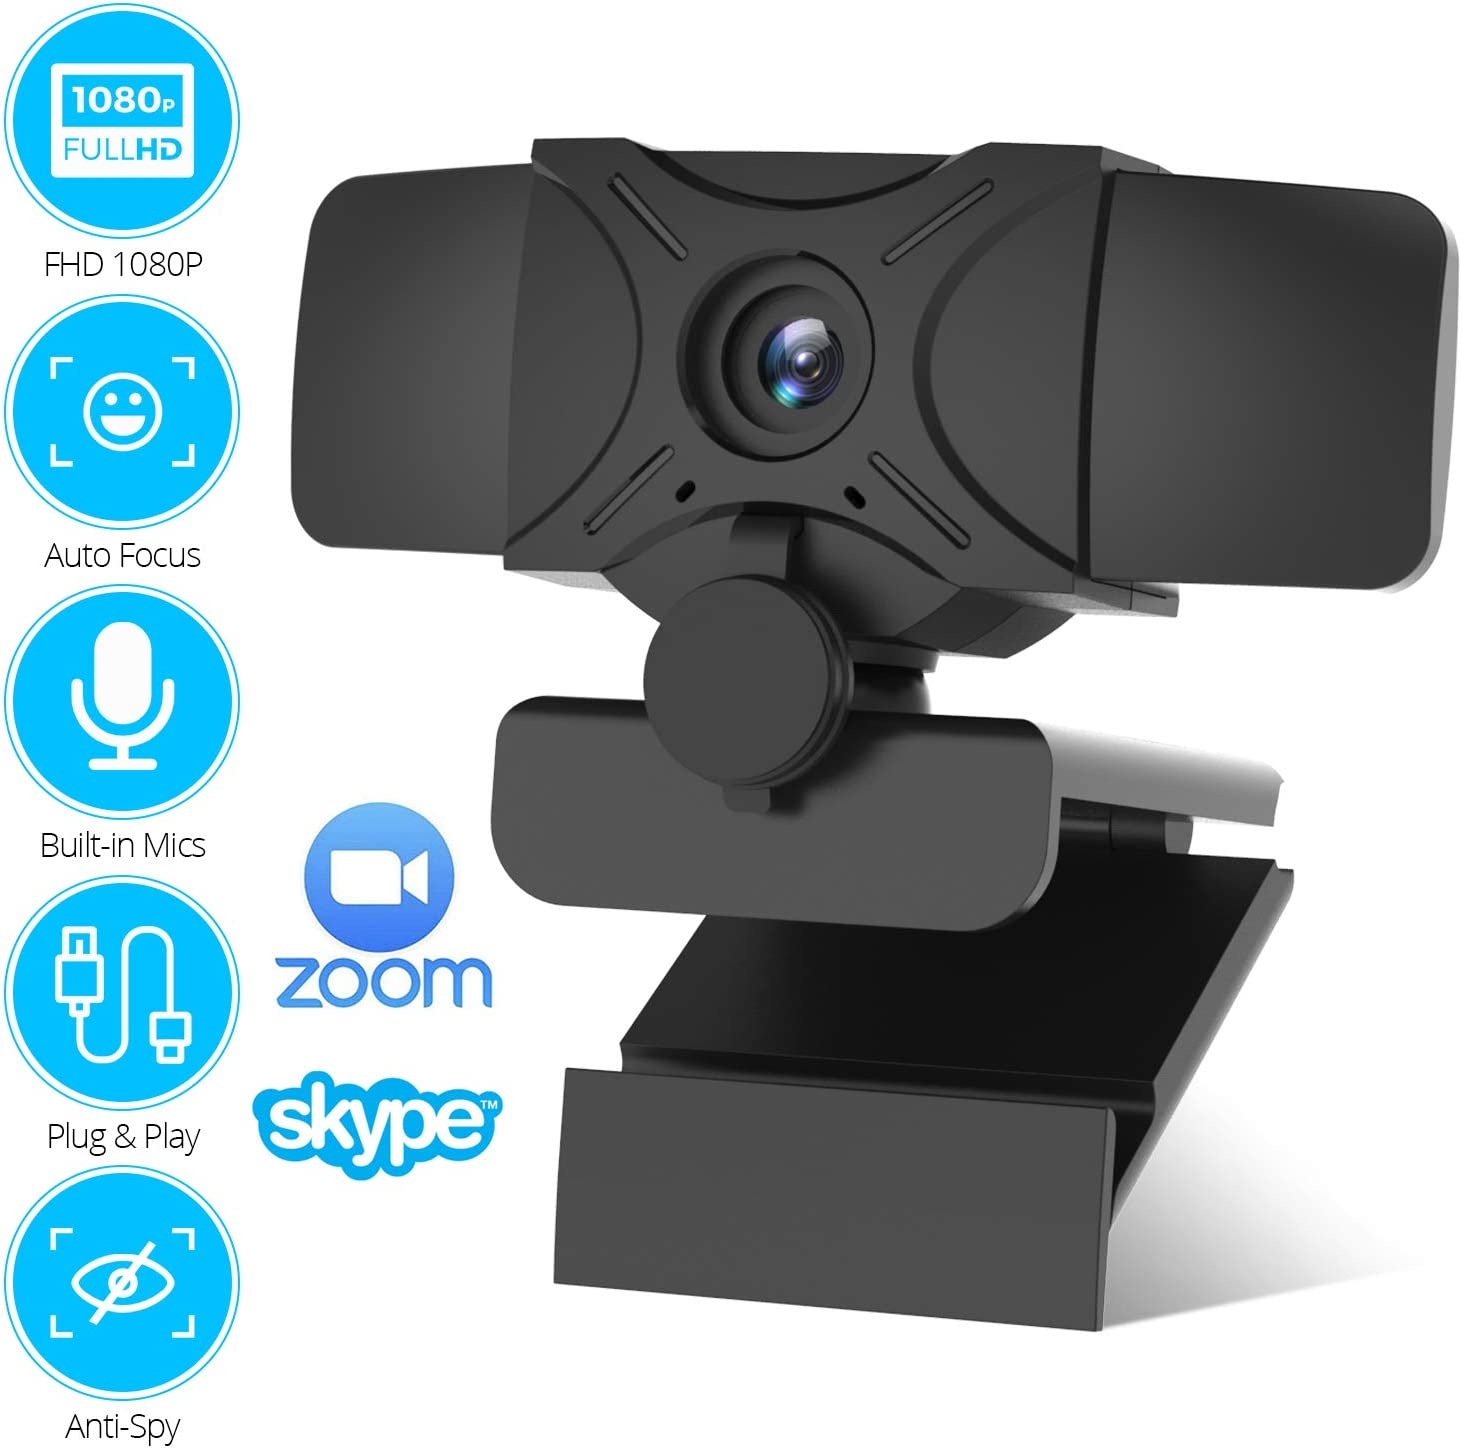 Webcam with Microphone Autofocus 1080P HD USB Webcams with Privacy Cover PC Desktop Laptop Computer Streaming Web Camera for Windows Mac OS Webcam for Video Calling Conference Gaming Online Classes